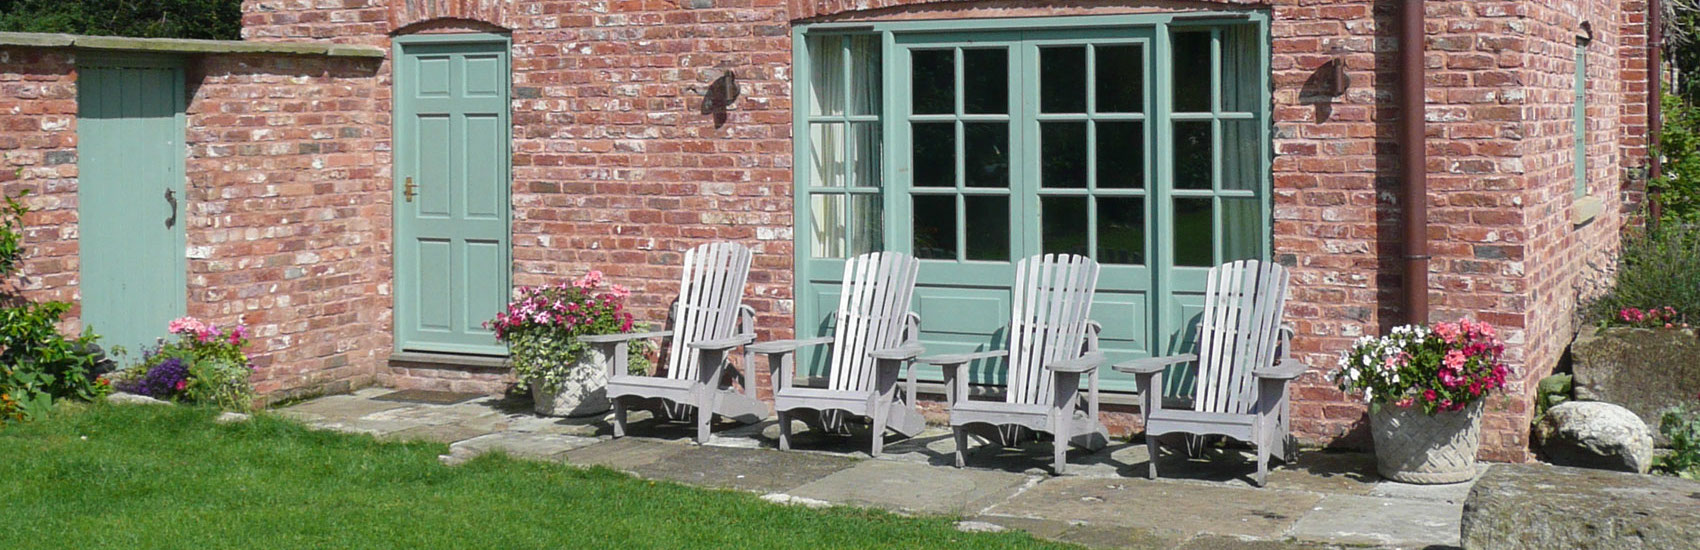 Glan Clwyd Isa | Holiday Accommodation North Wales | Cae Caled Page Header